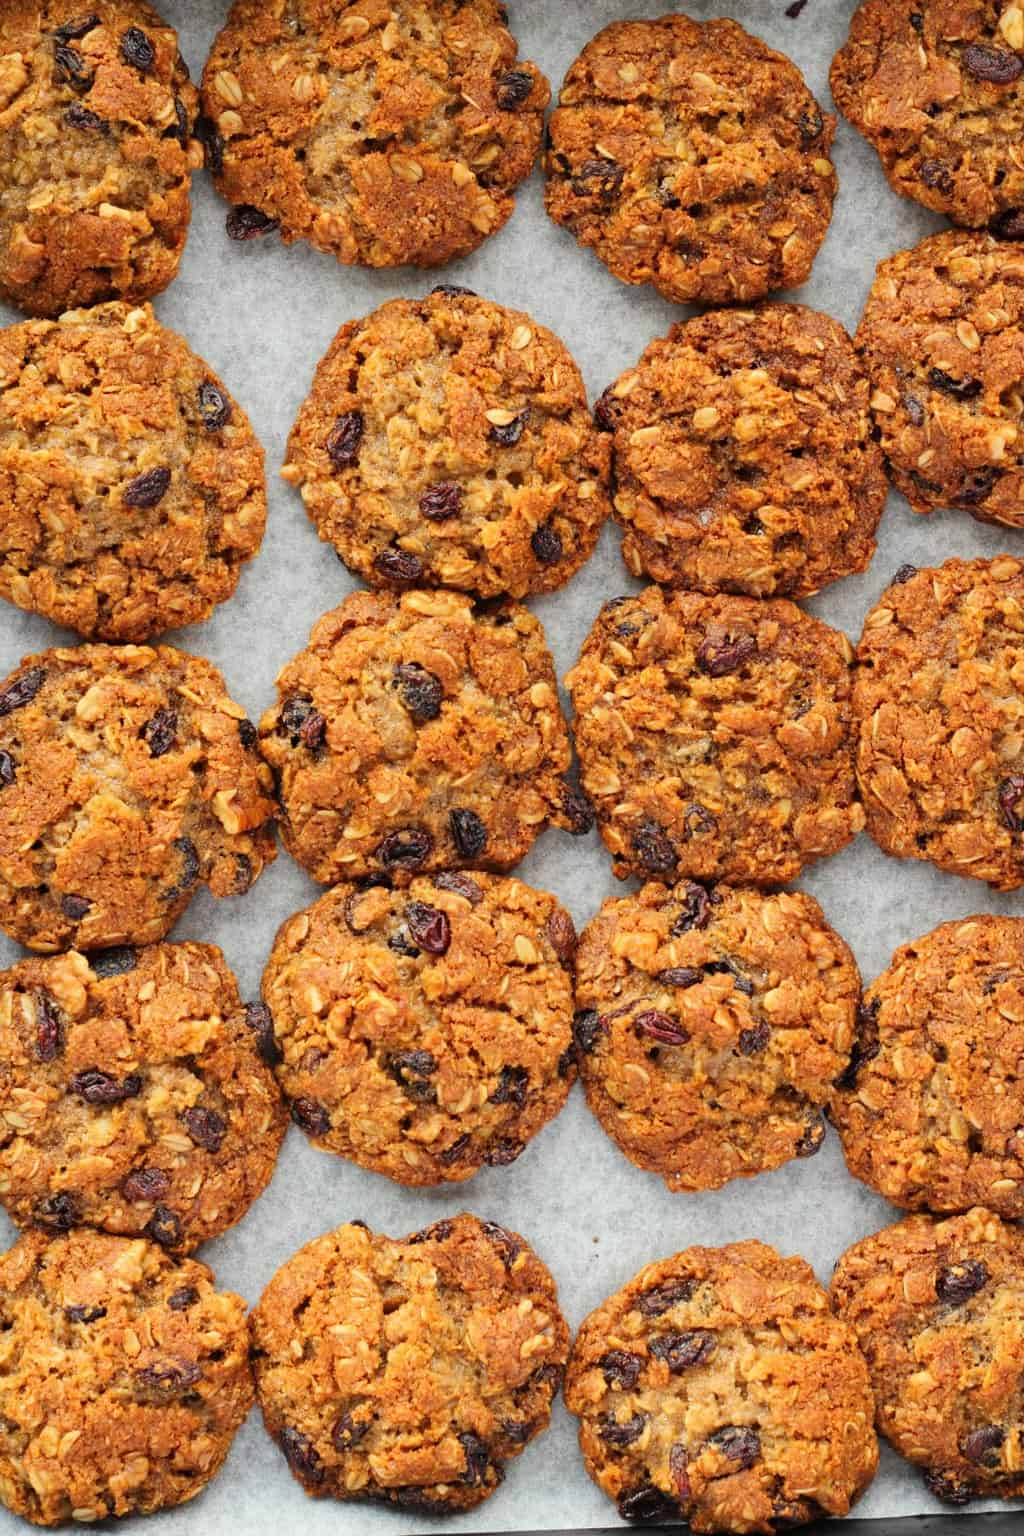 Vegan oatmeal raisin cookies freshly baked on a baking tray.